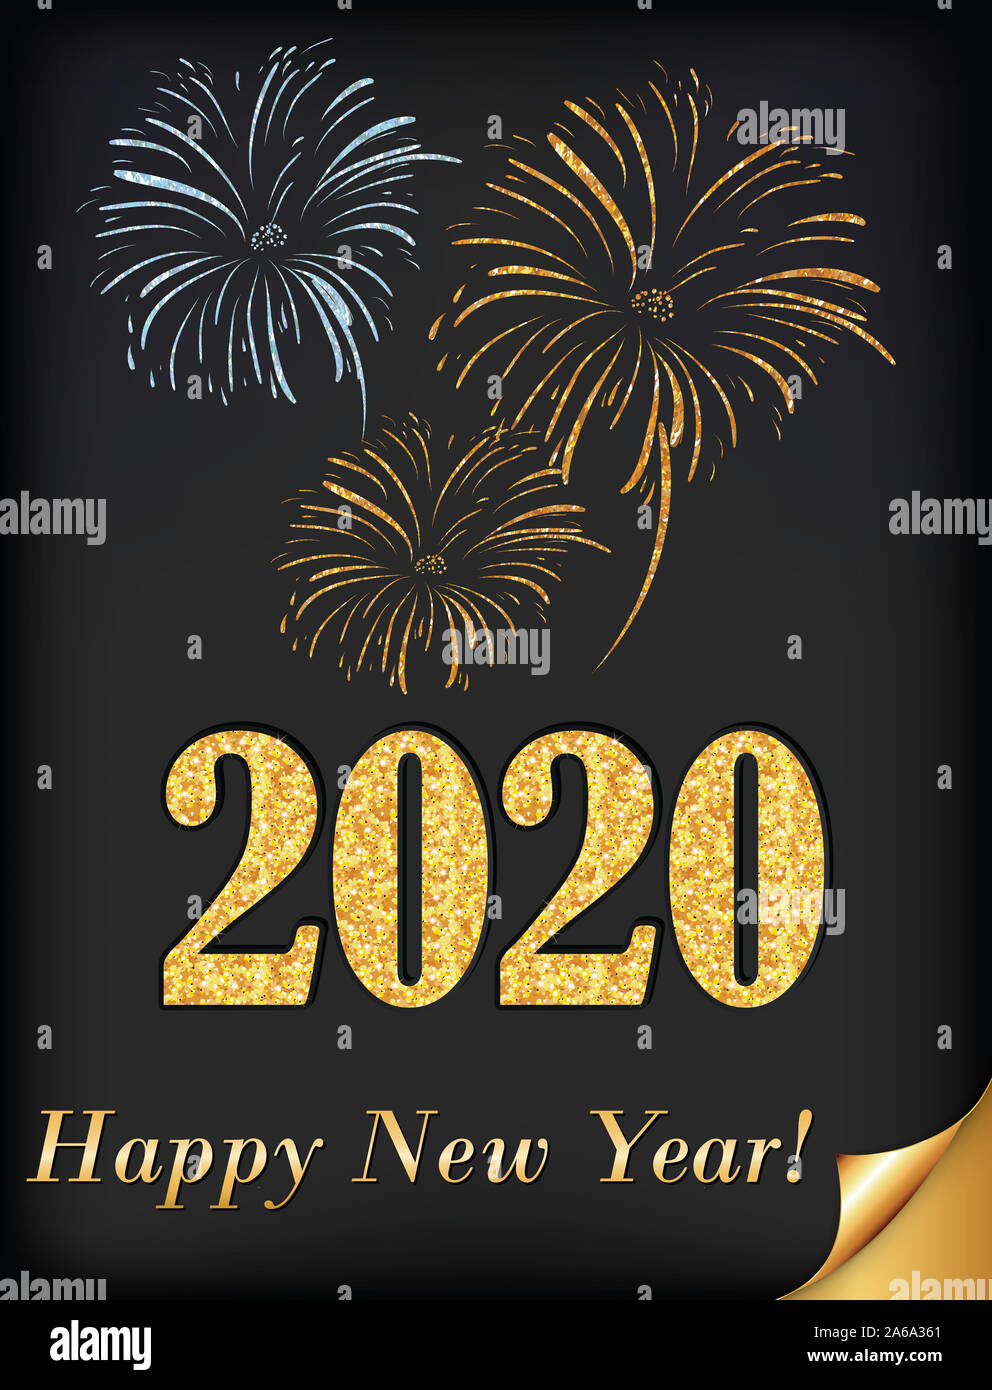 Happy New Year 2020 Greeting Card For Print With Classic Design Stylized Fireworks On A Dark Background Stock Photo Alamy